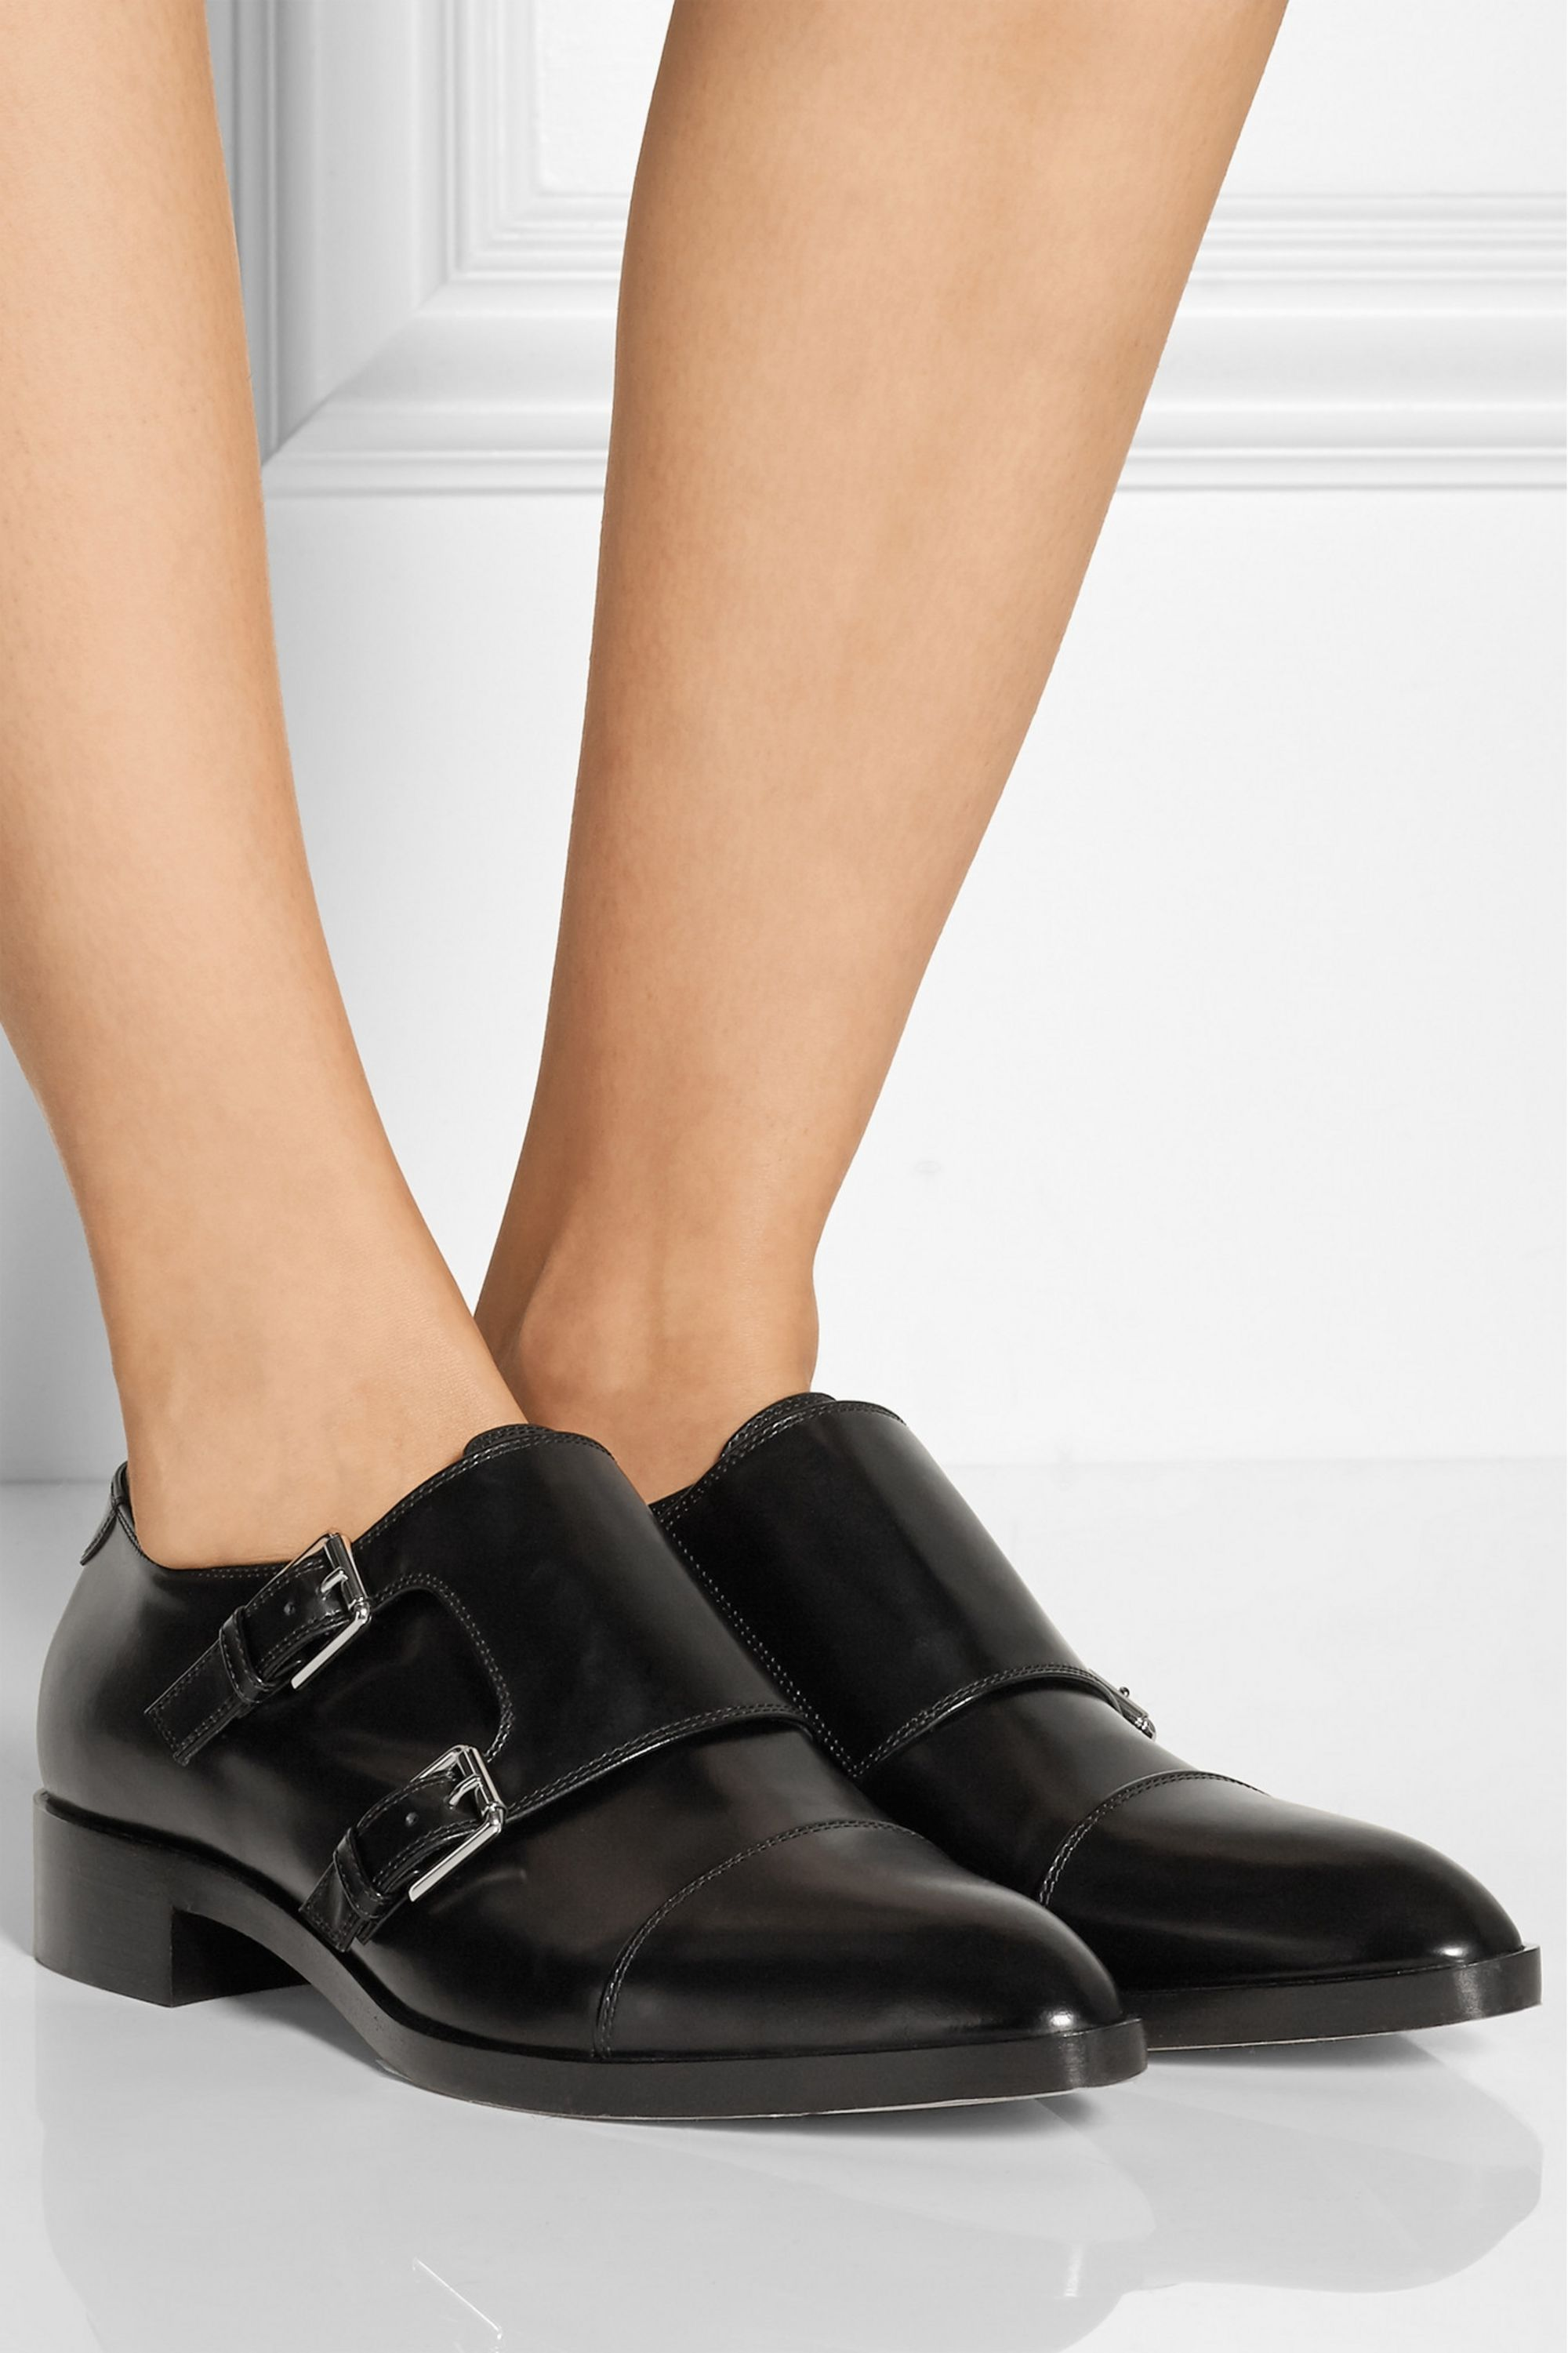 Gianvito Rossi Monk-strap leather loafers